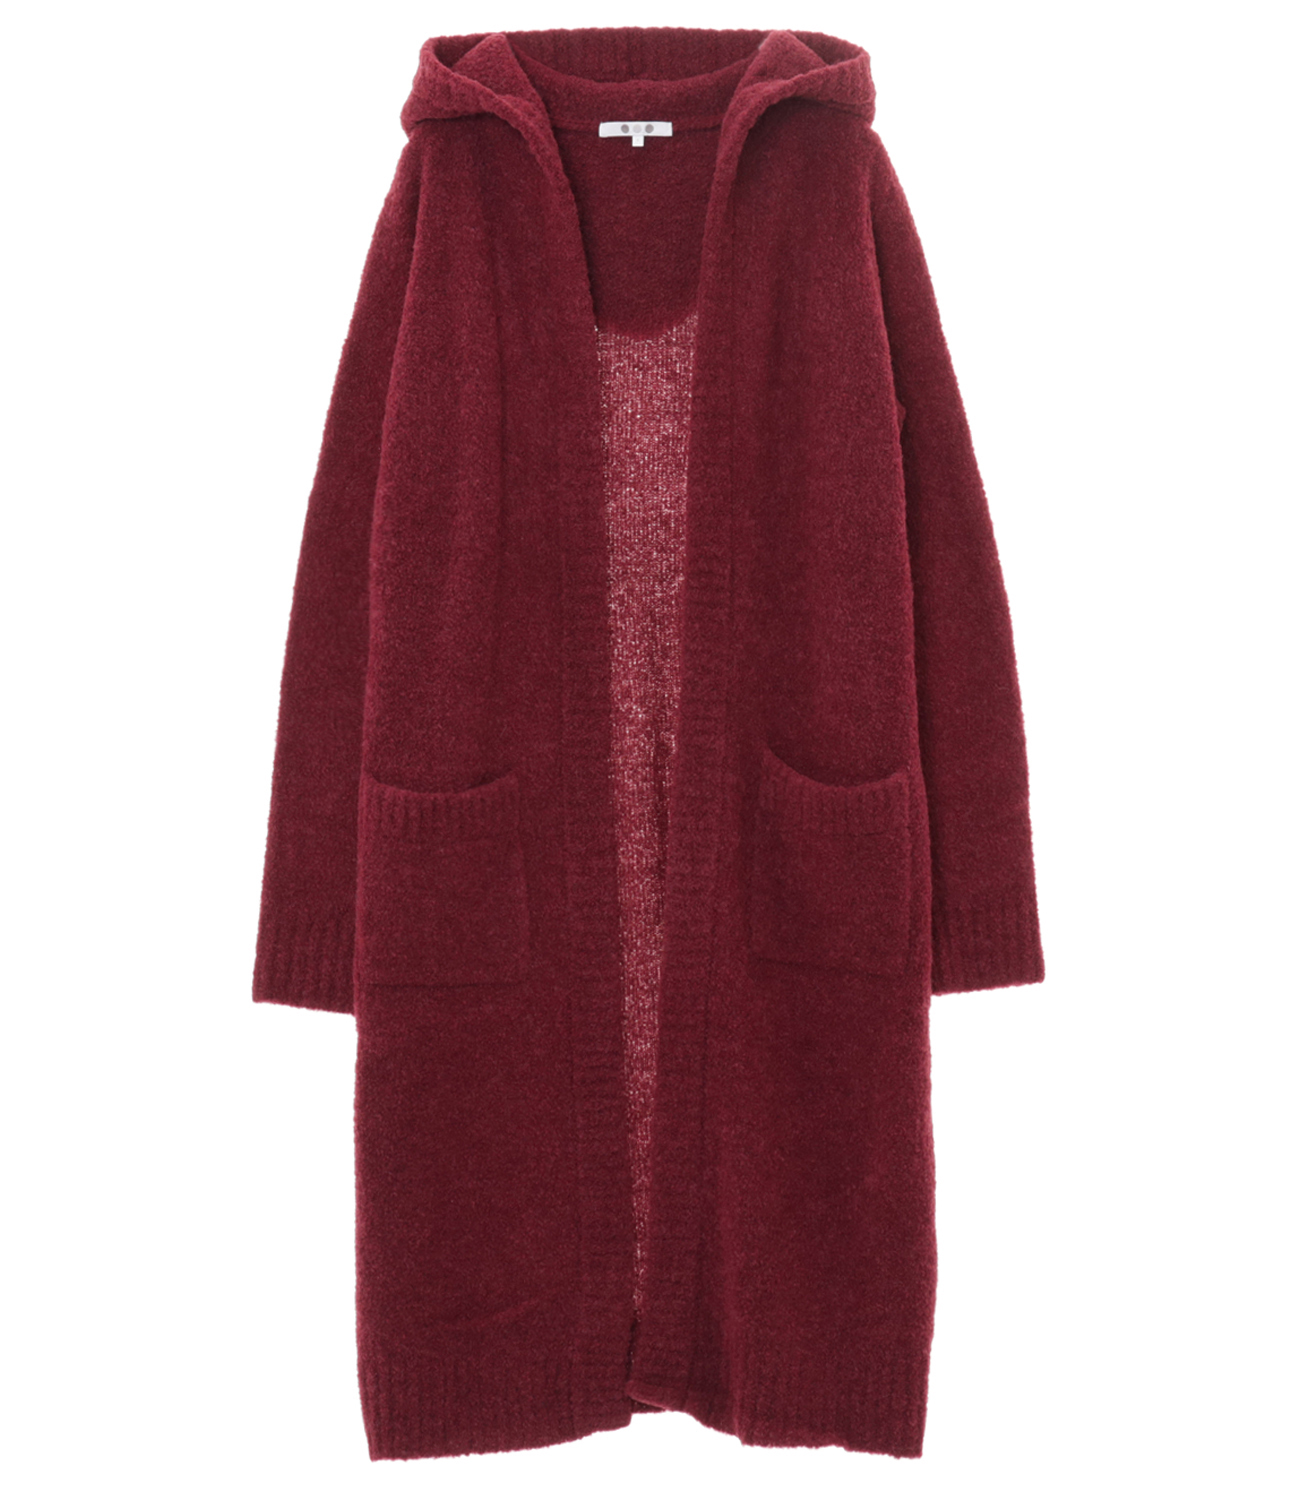 alpaca mixed boucle long cardy 詳細画像 burgandy 1